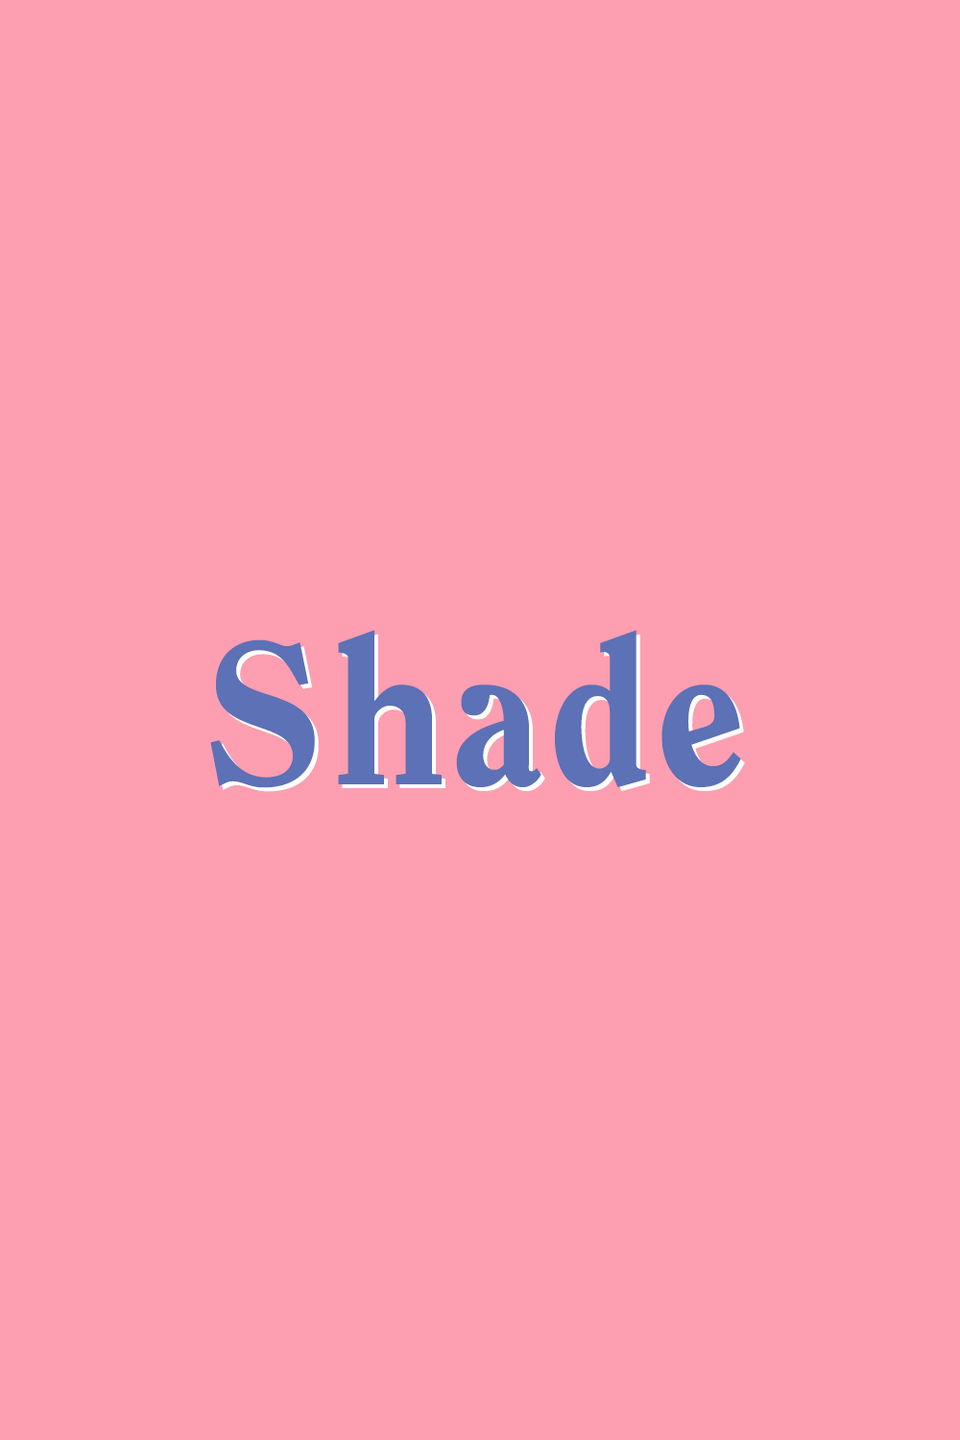 "<p>You can ""throw shade"" or ""be shady,"" in other words, subtly (or indirectly) disrespect someone. Stemming from <a href=""https://www.oprahdaily.com/life/a23601818/queer-cultural-appropriation-definition/"" rel=""nofollow noopener"" target=""_blank"" data-ylk=""slk:queer culture"" class=""link rapid-noclick-resp"">queer culture</a>, again, <em><a href=""https://www.amazon.com/Paris-Burning-Jennie-Livingston/dp/B007QJ89VU?tag=syn-yahoo-20&ascsubtag=%5Bartid%7C10070.g.36318291%5Bsrc%7Cyahoo-us"" rel=""nofollow noopener"" target=""_blank"" data-ylk=""slk:Paris Is Burning"" class=""link rapid-noclick-resp"">Paris Is Burning</a> </em>captures the art of it. In the film, drag performer Dorian Corey puts it this way: ""Shade is, I don't have to tell you you're ugly, but I don't have to tell you because you <em>know</em> you're ugly."" Shade. </p>"